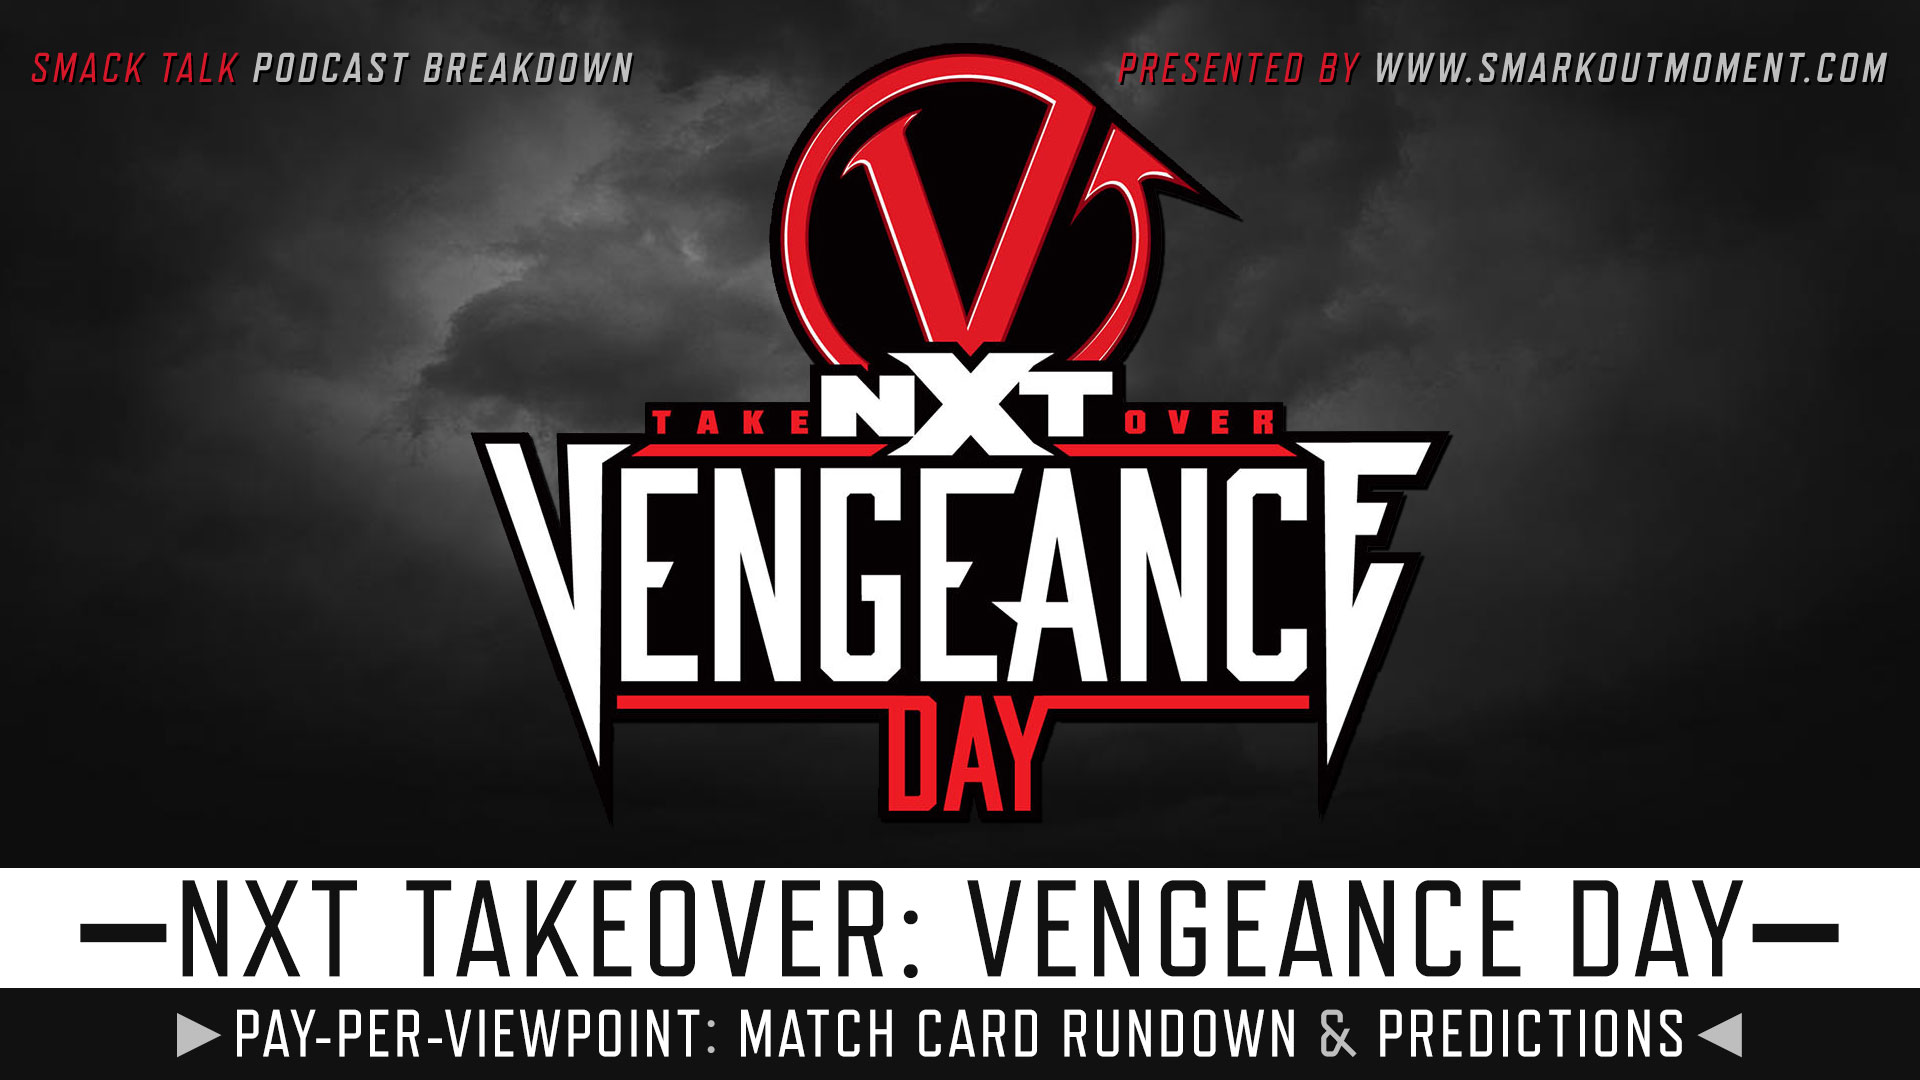 WWE NXT TakeOver: Vengeance Day spoilers podcast